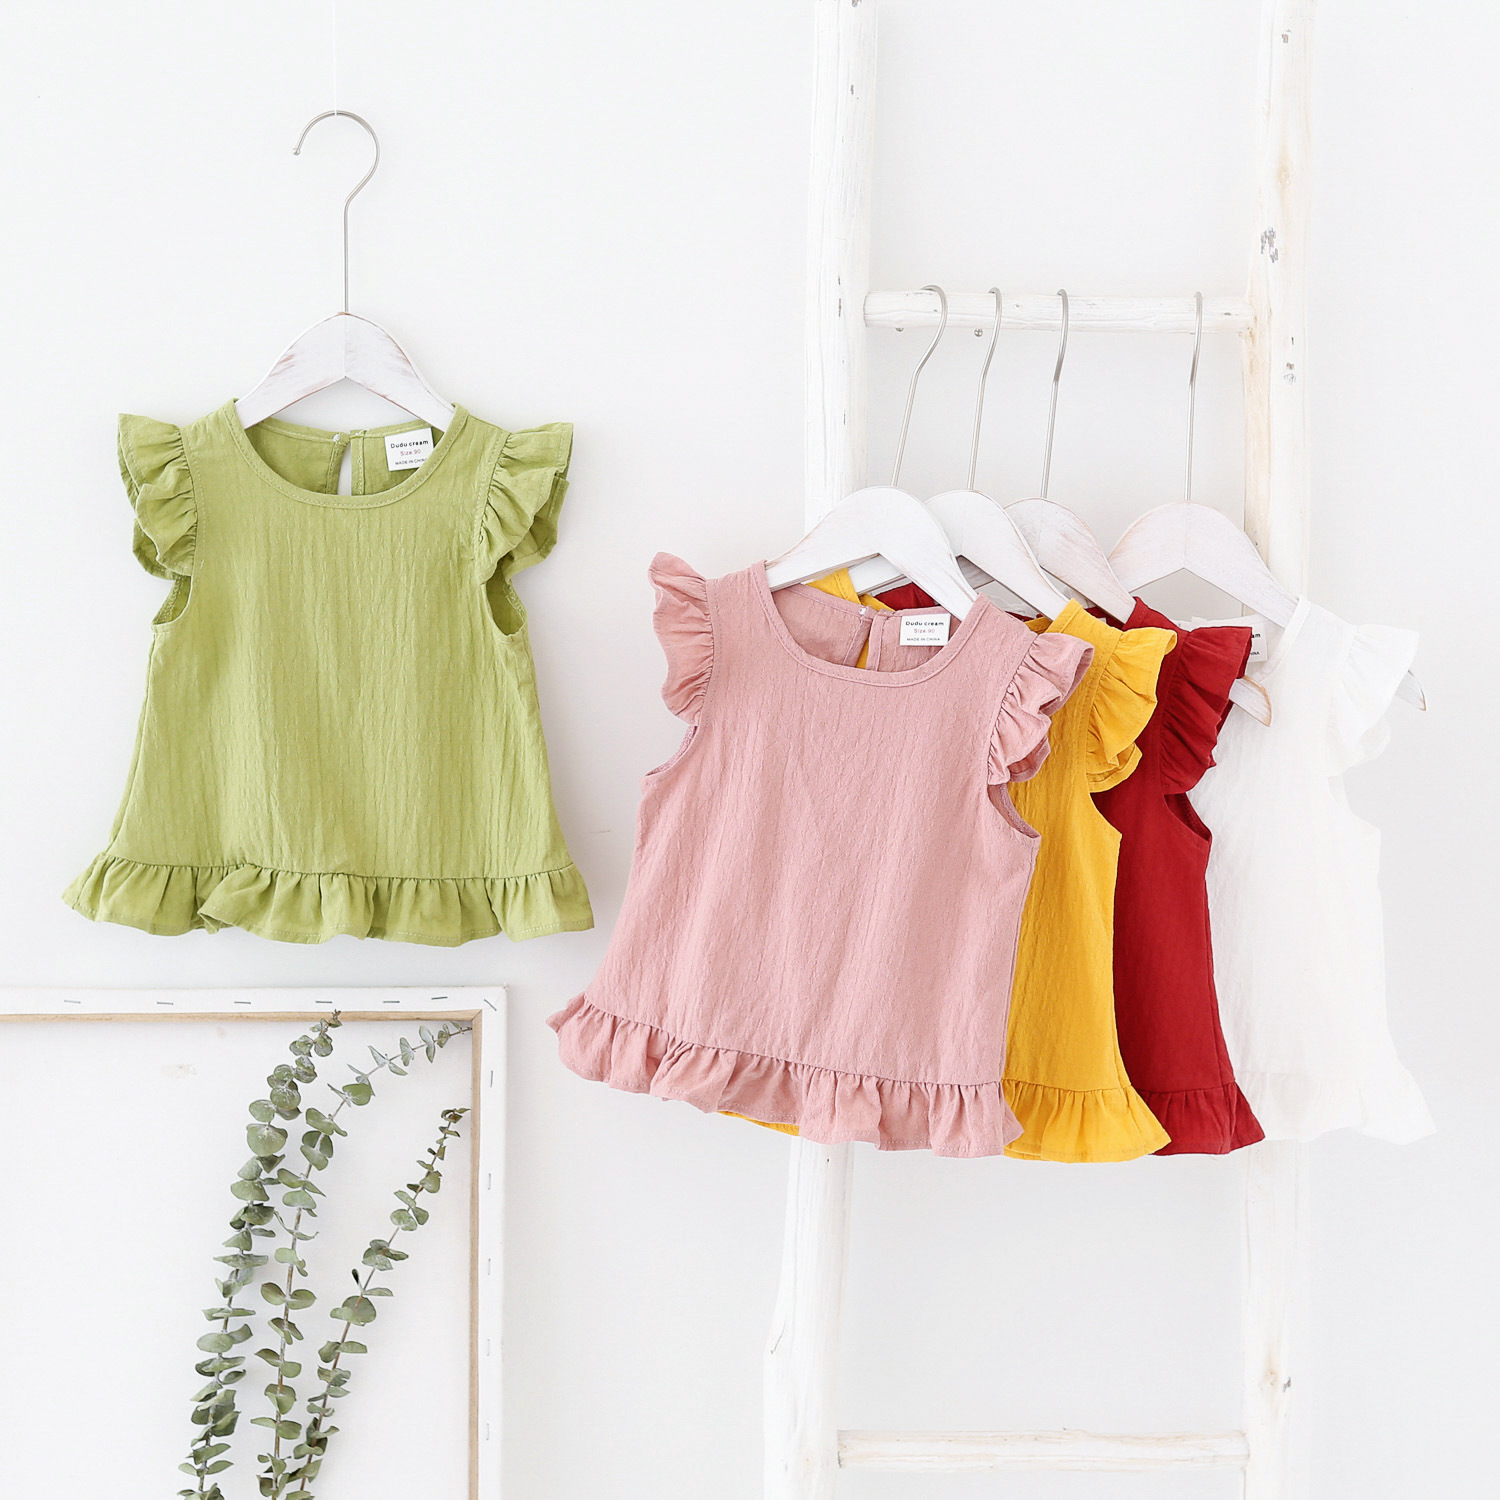 2020 Children Shirts Summer Girls Blouse Shirt Lotus Leaf Sleeveless Tops For Kids Candy Color Toddler Outerwear Baby Tees